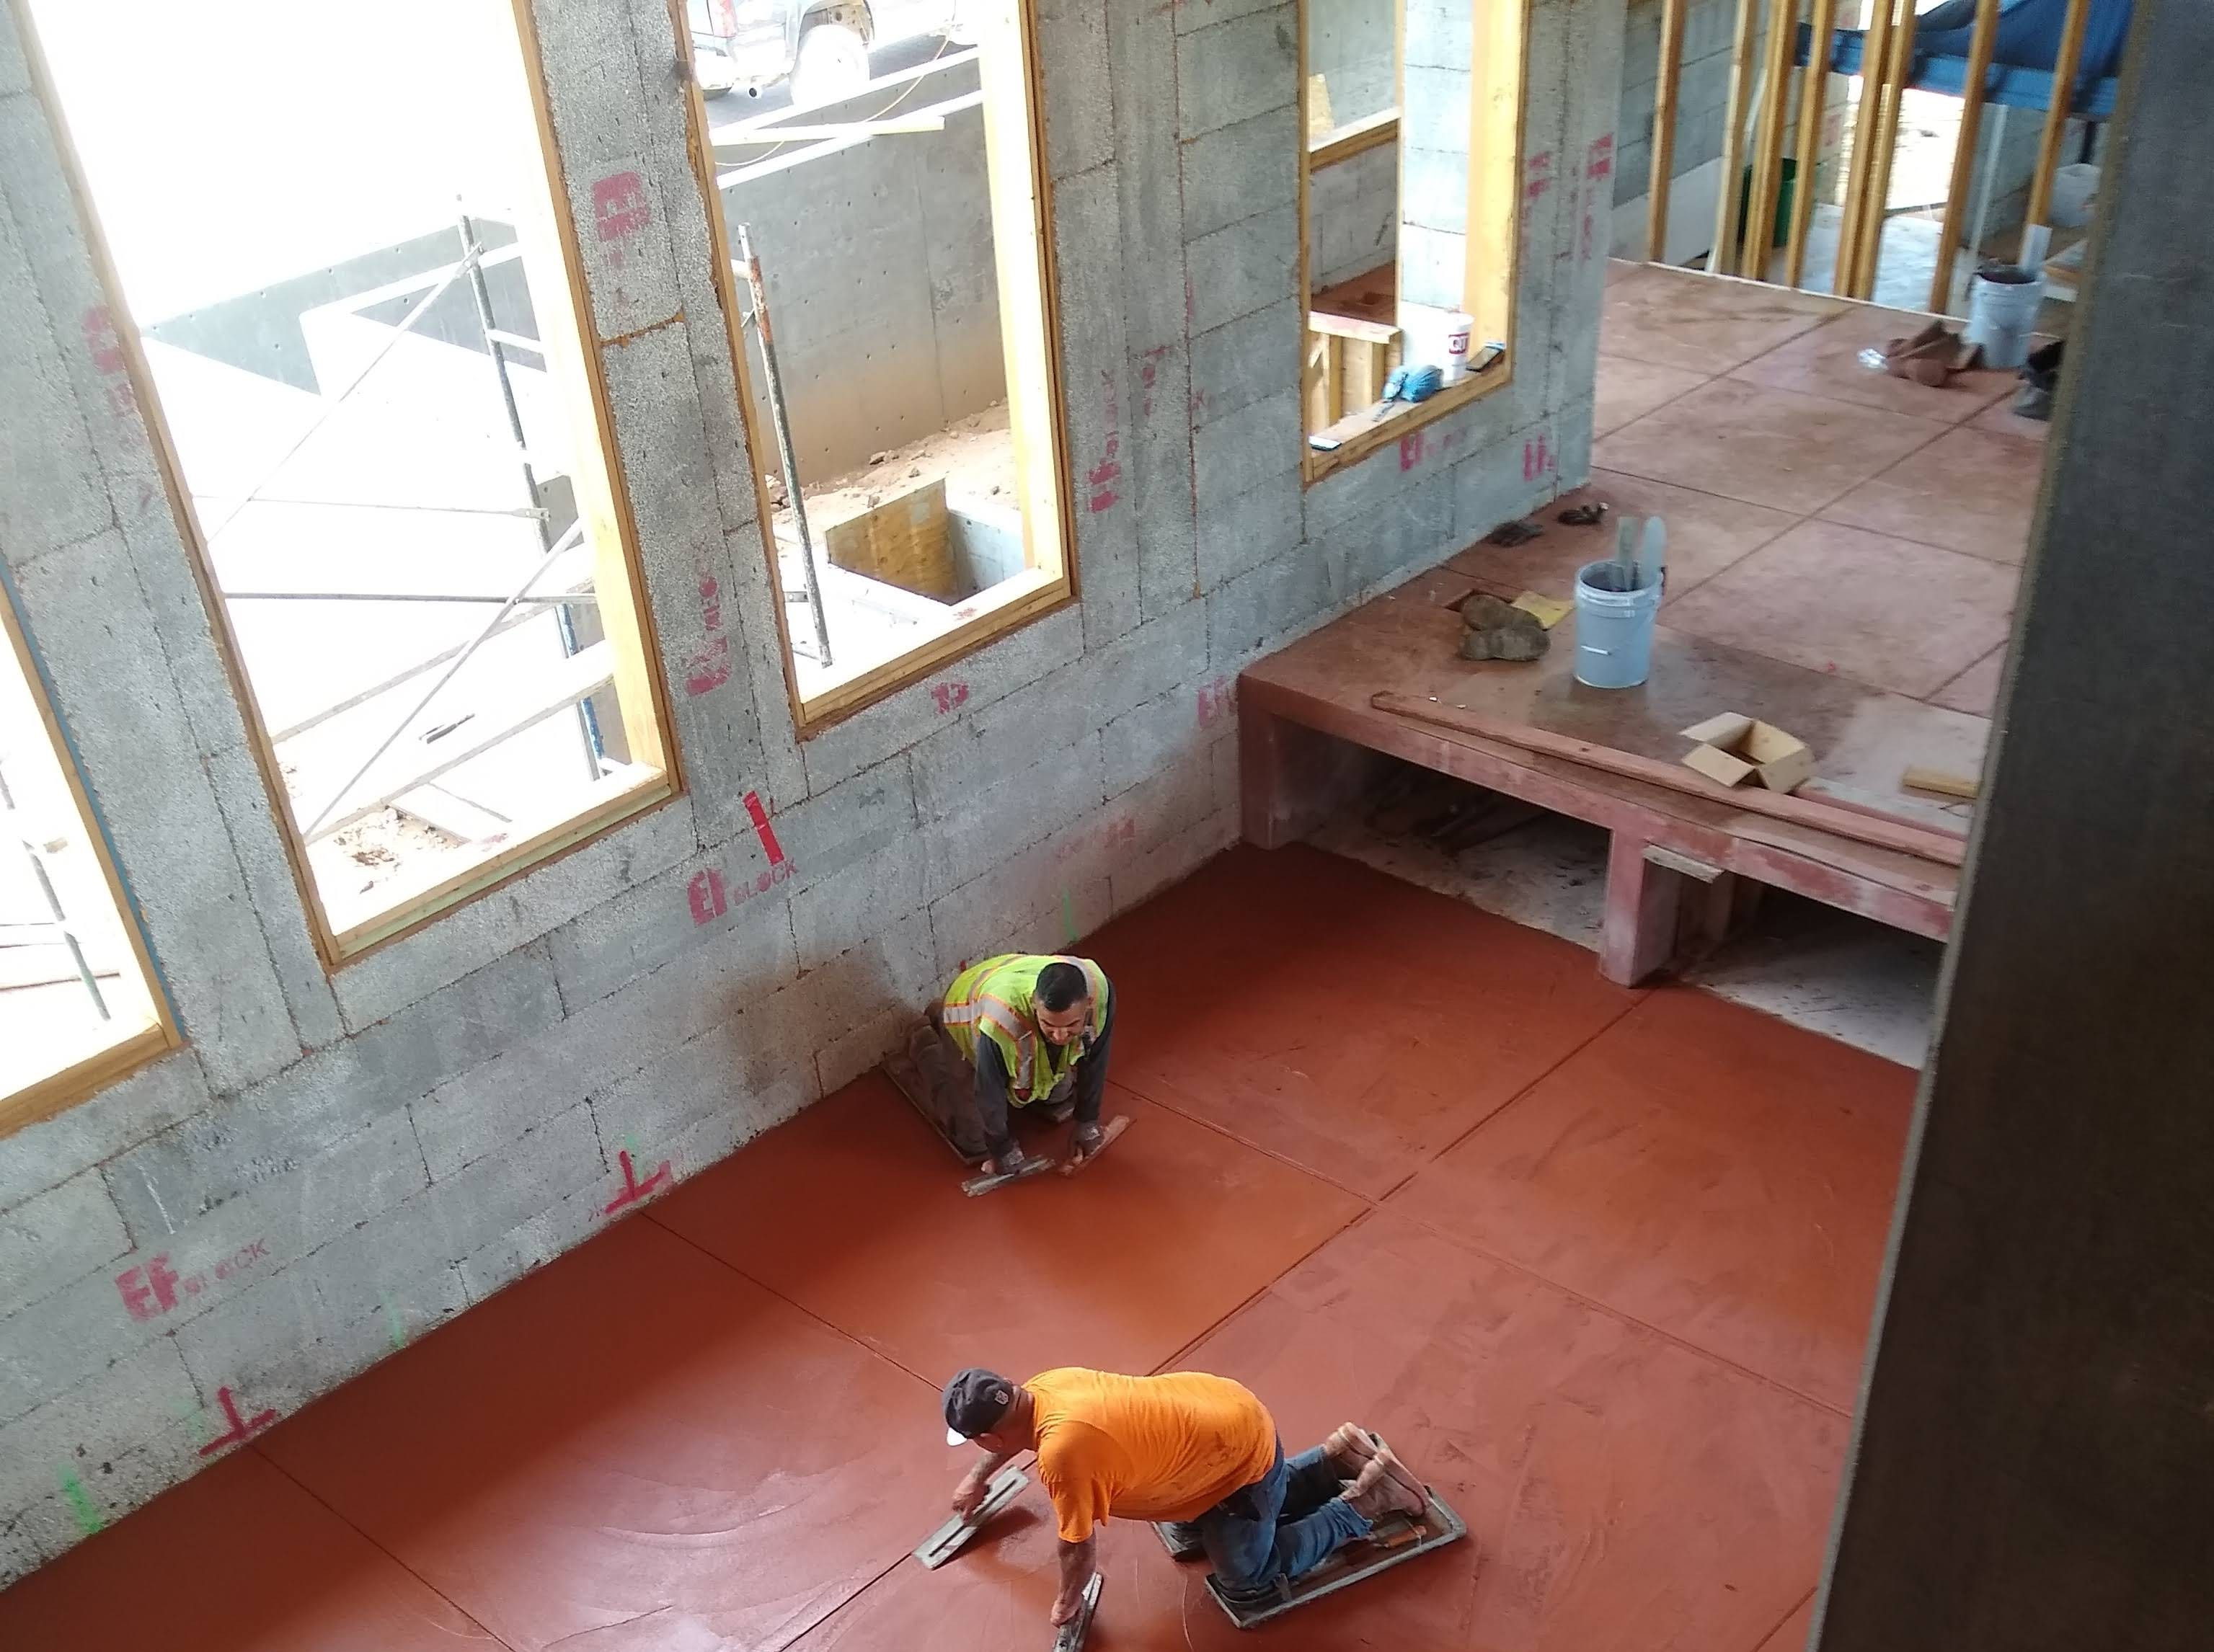 The family room, on the opposite side of the fireplace, is located to the front of the house. Tall windows above eye level soften boundaries between the interior and exterior of the house while providing privacy. The red concrete floors will be waxed and polished.